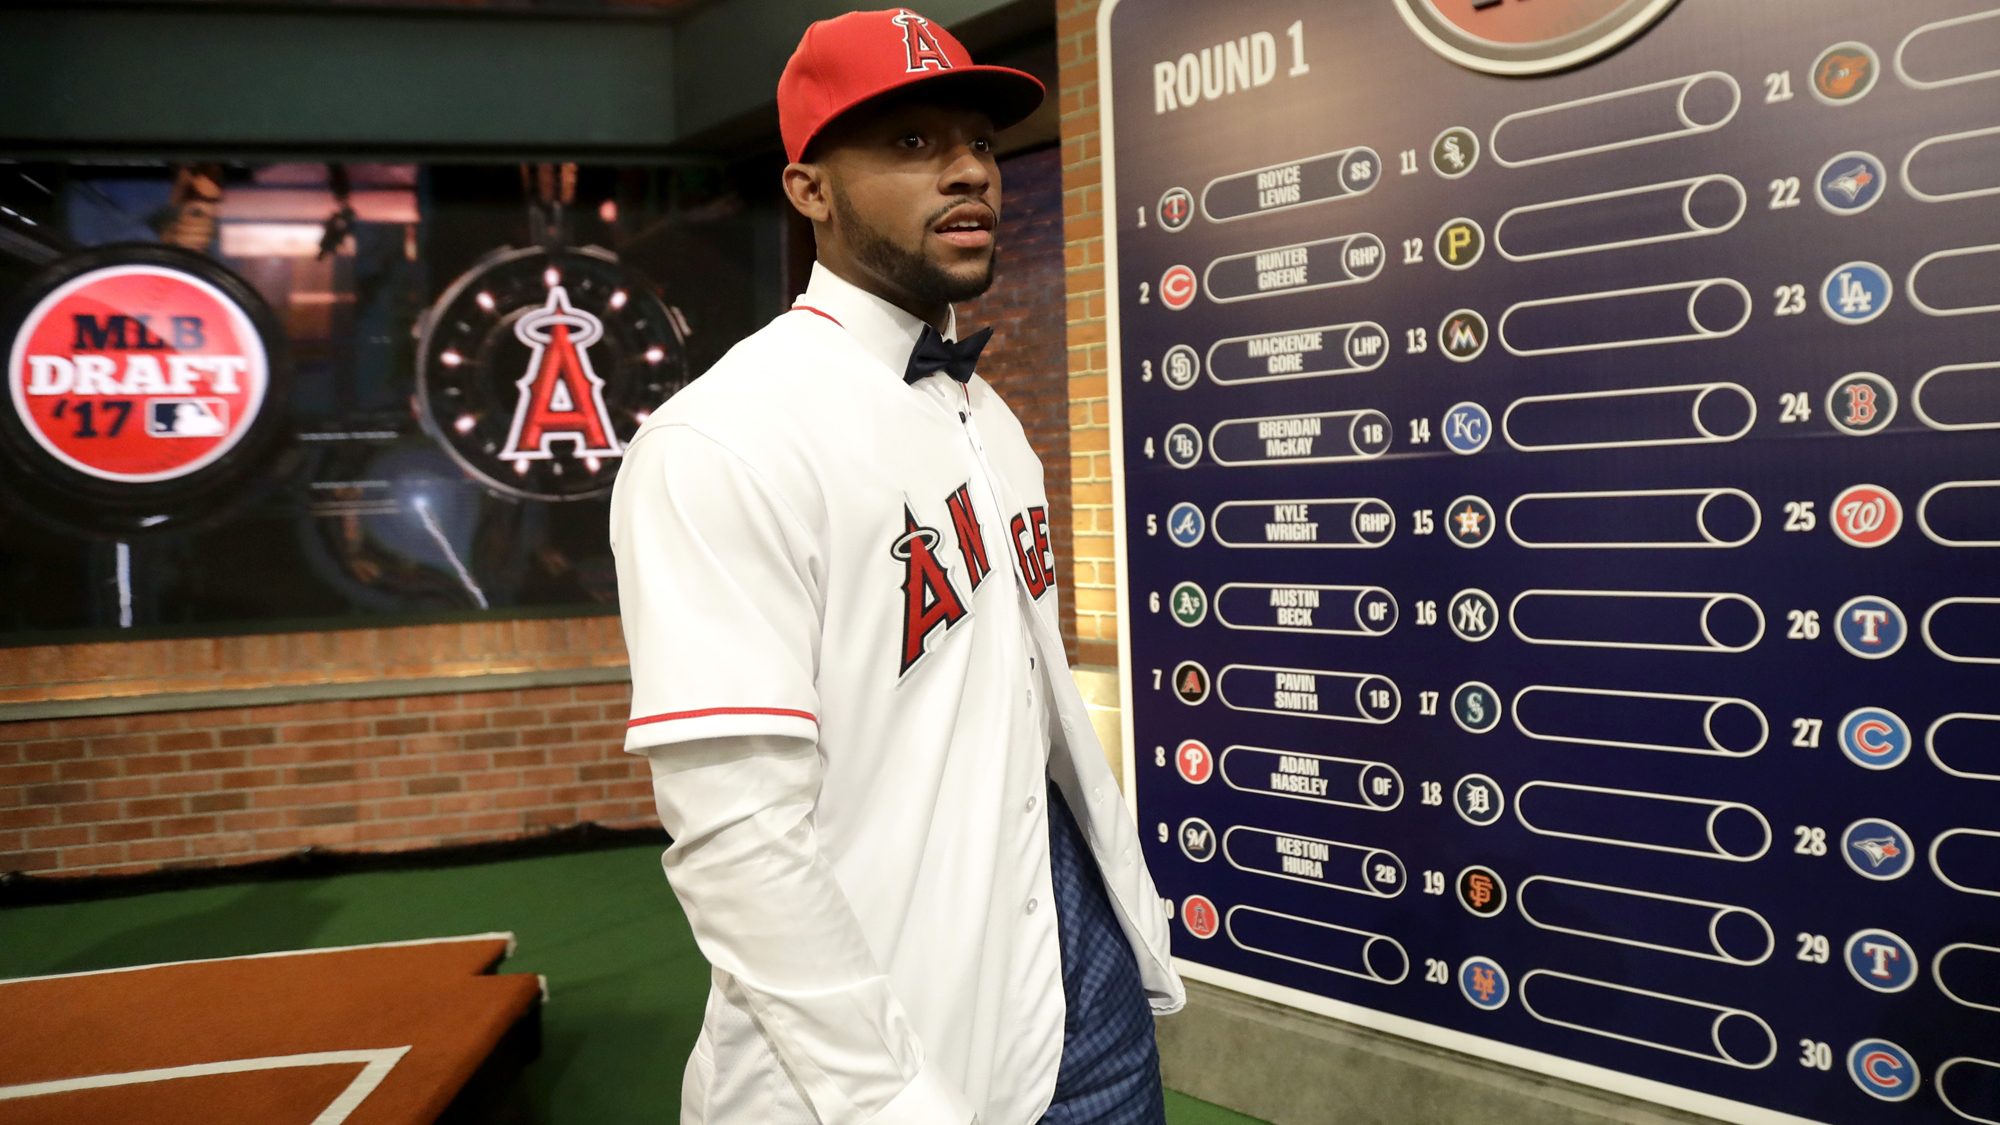 Baseball Draft